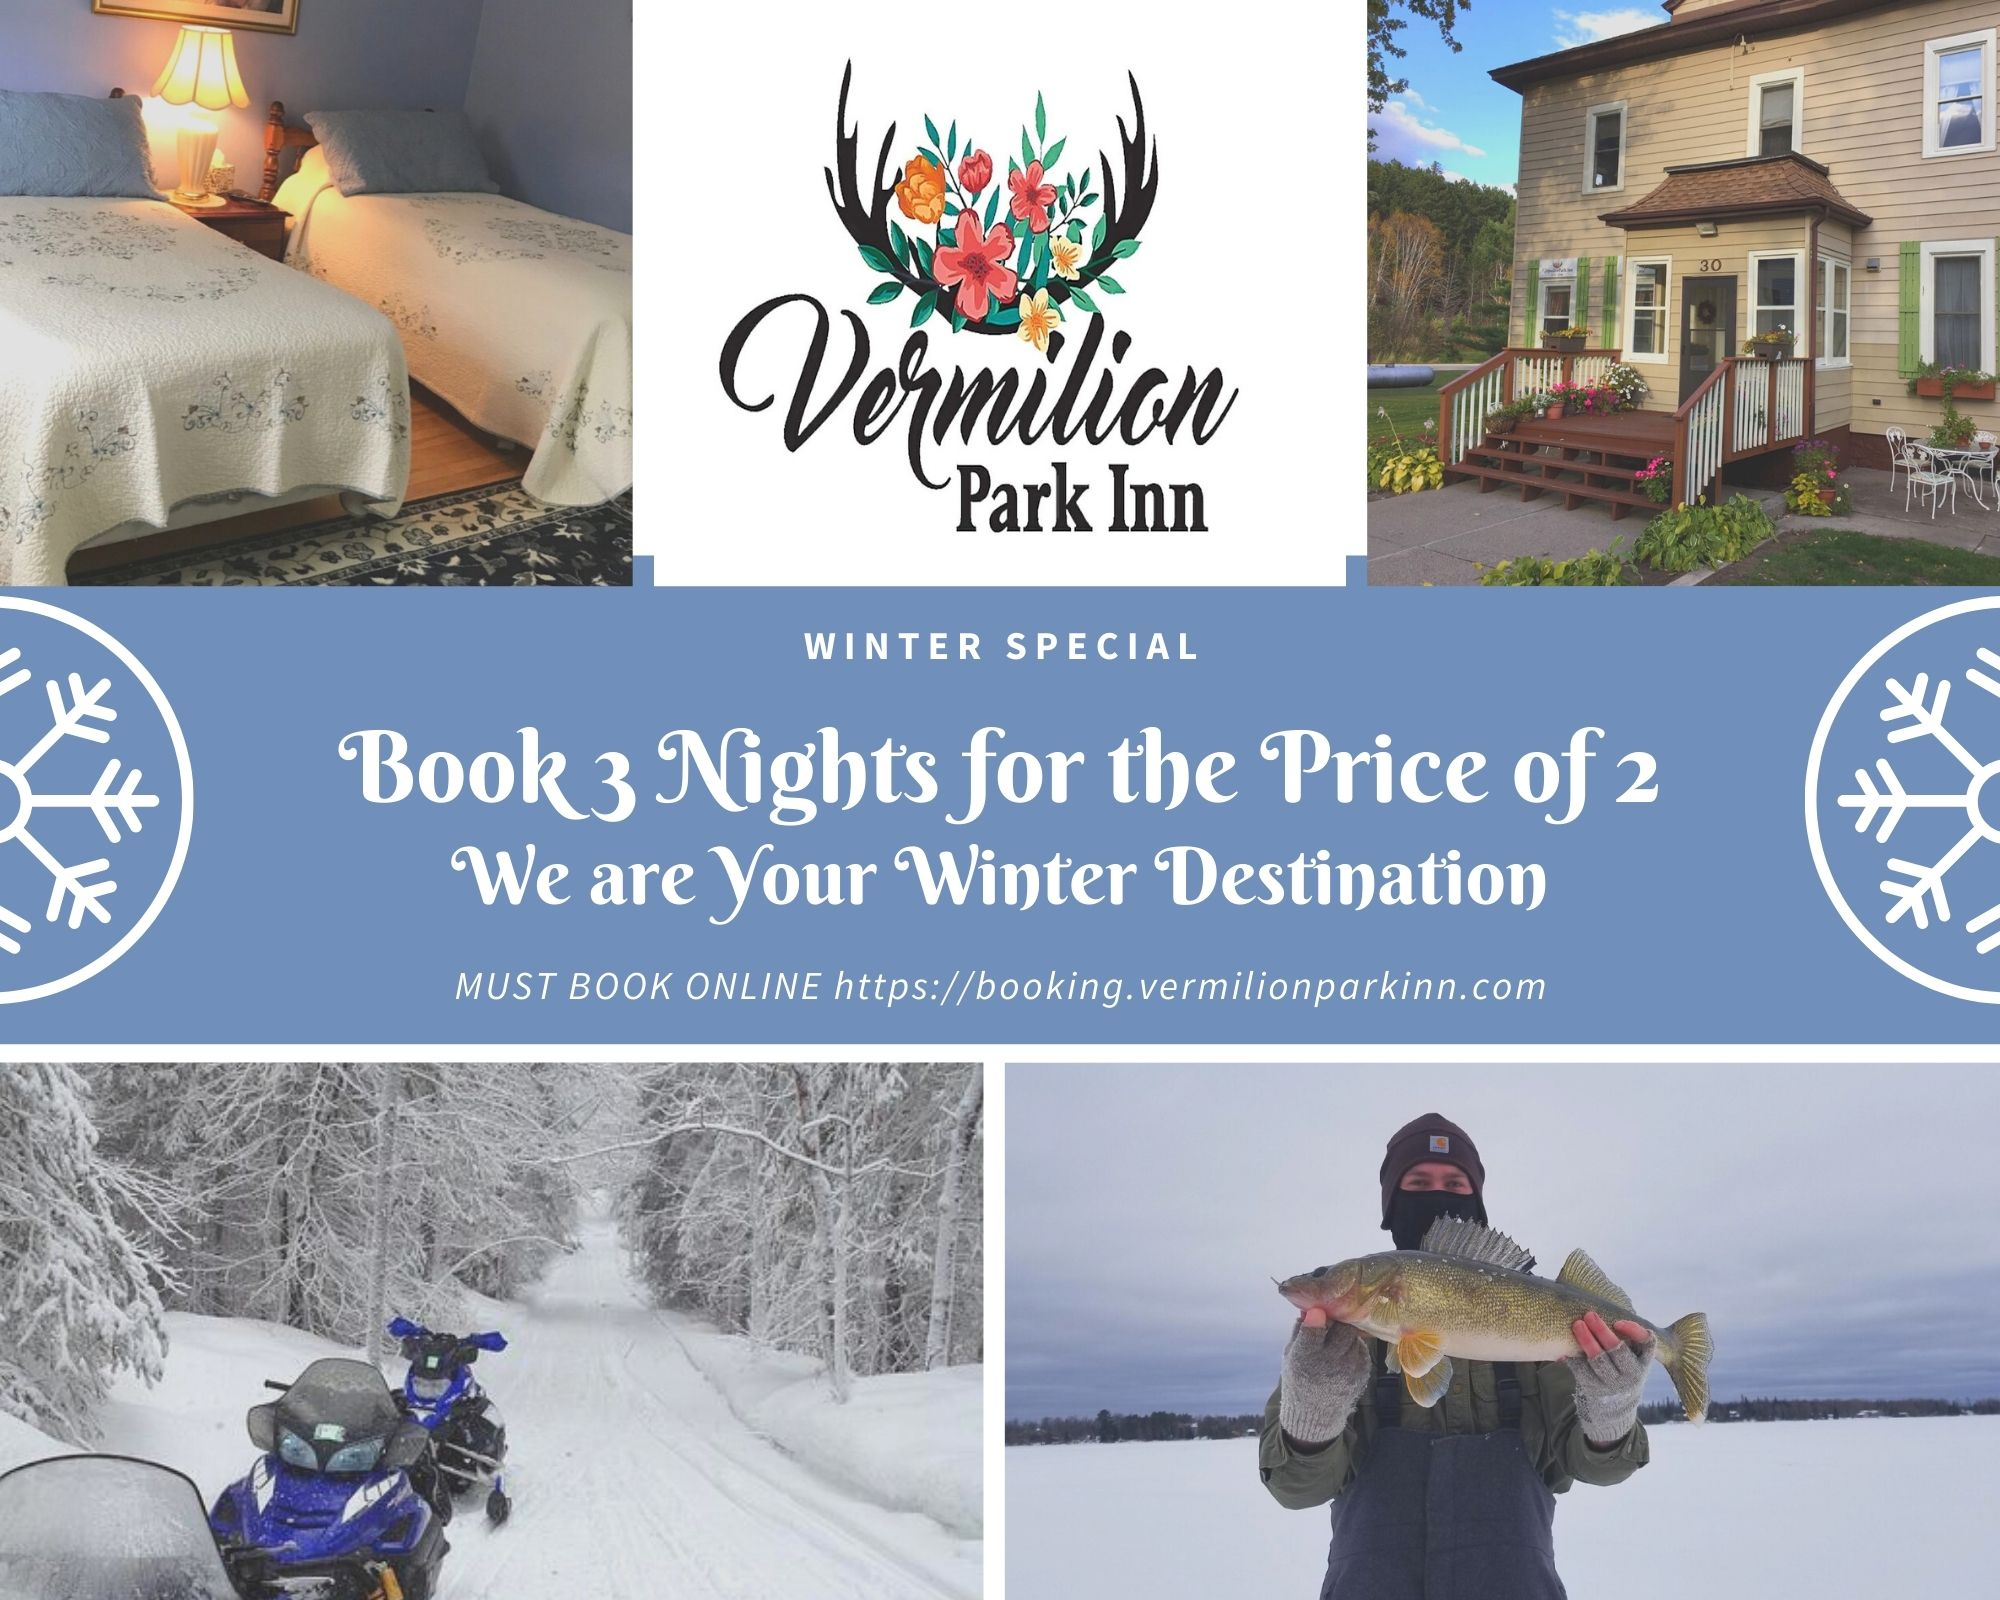 Vermilion Park Inn Winter special